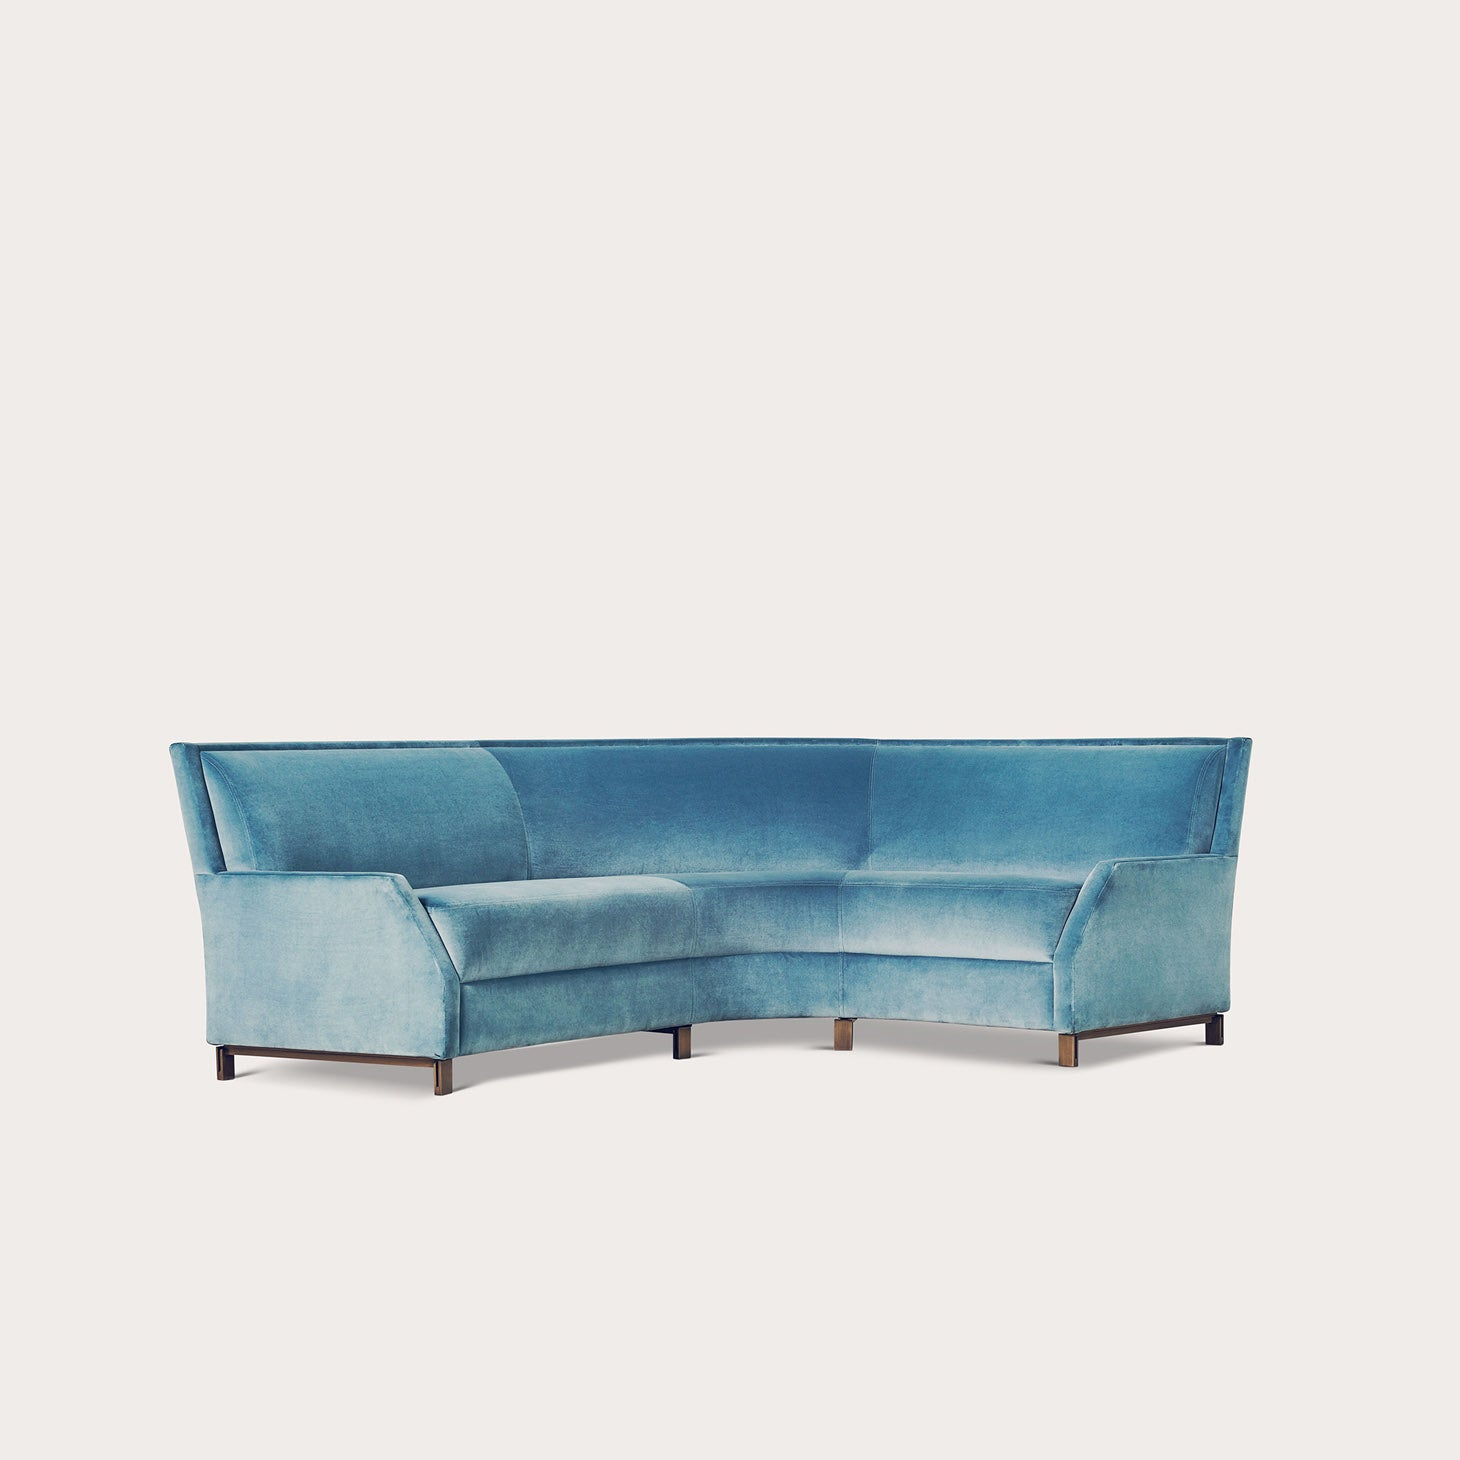 Perry Street Boomerang Seating Yabu Pushelberg Designer Furniture Sku: 990-240-10032